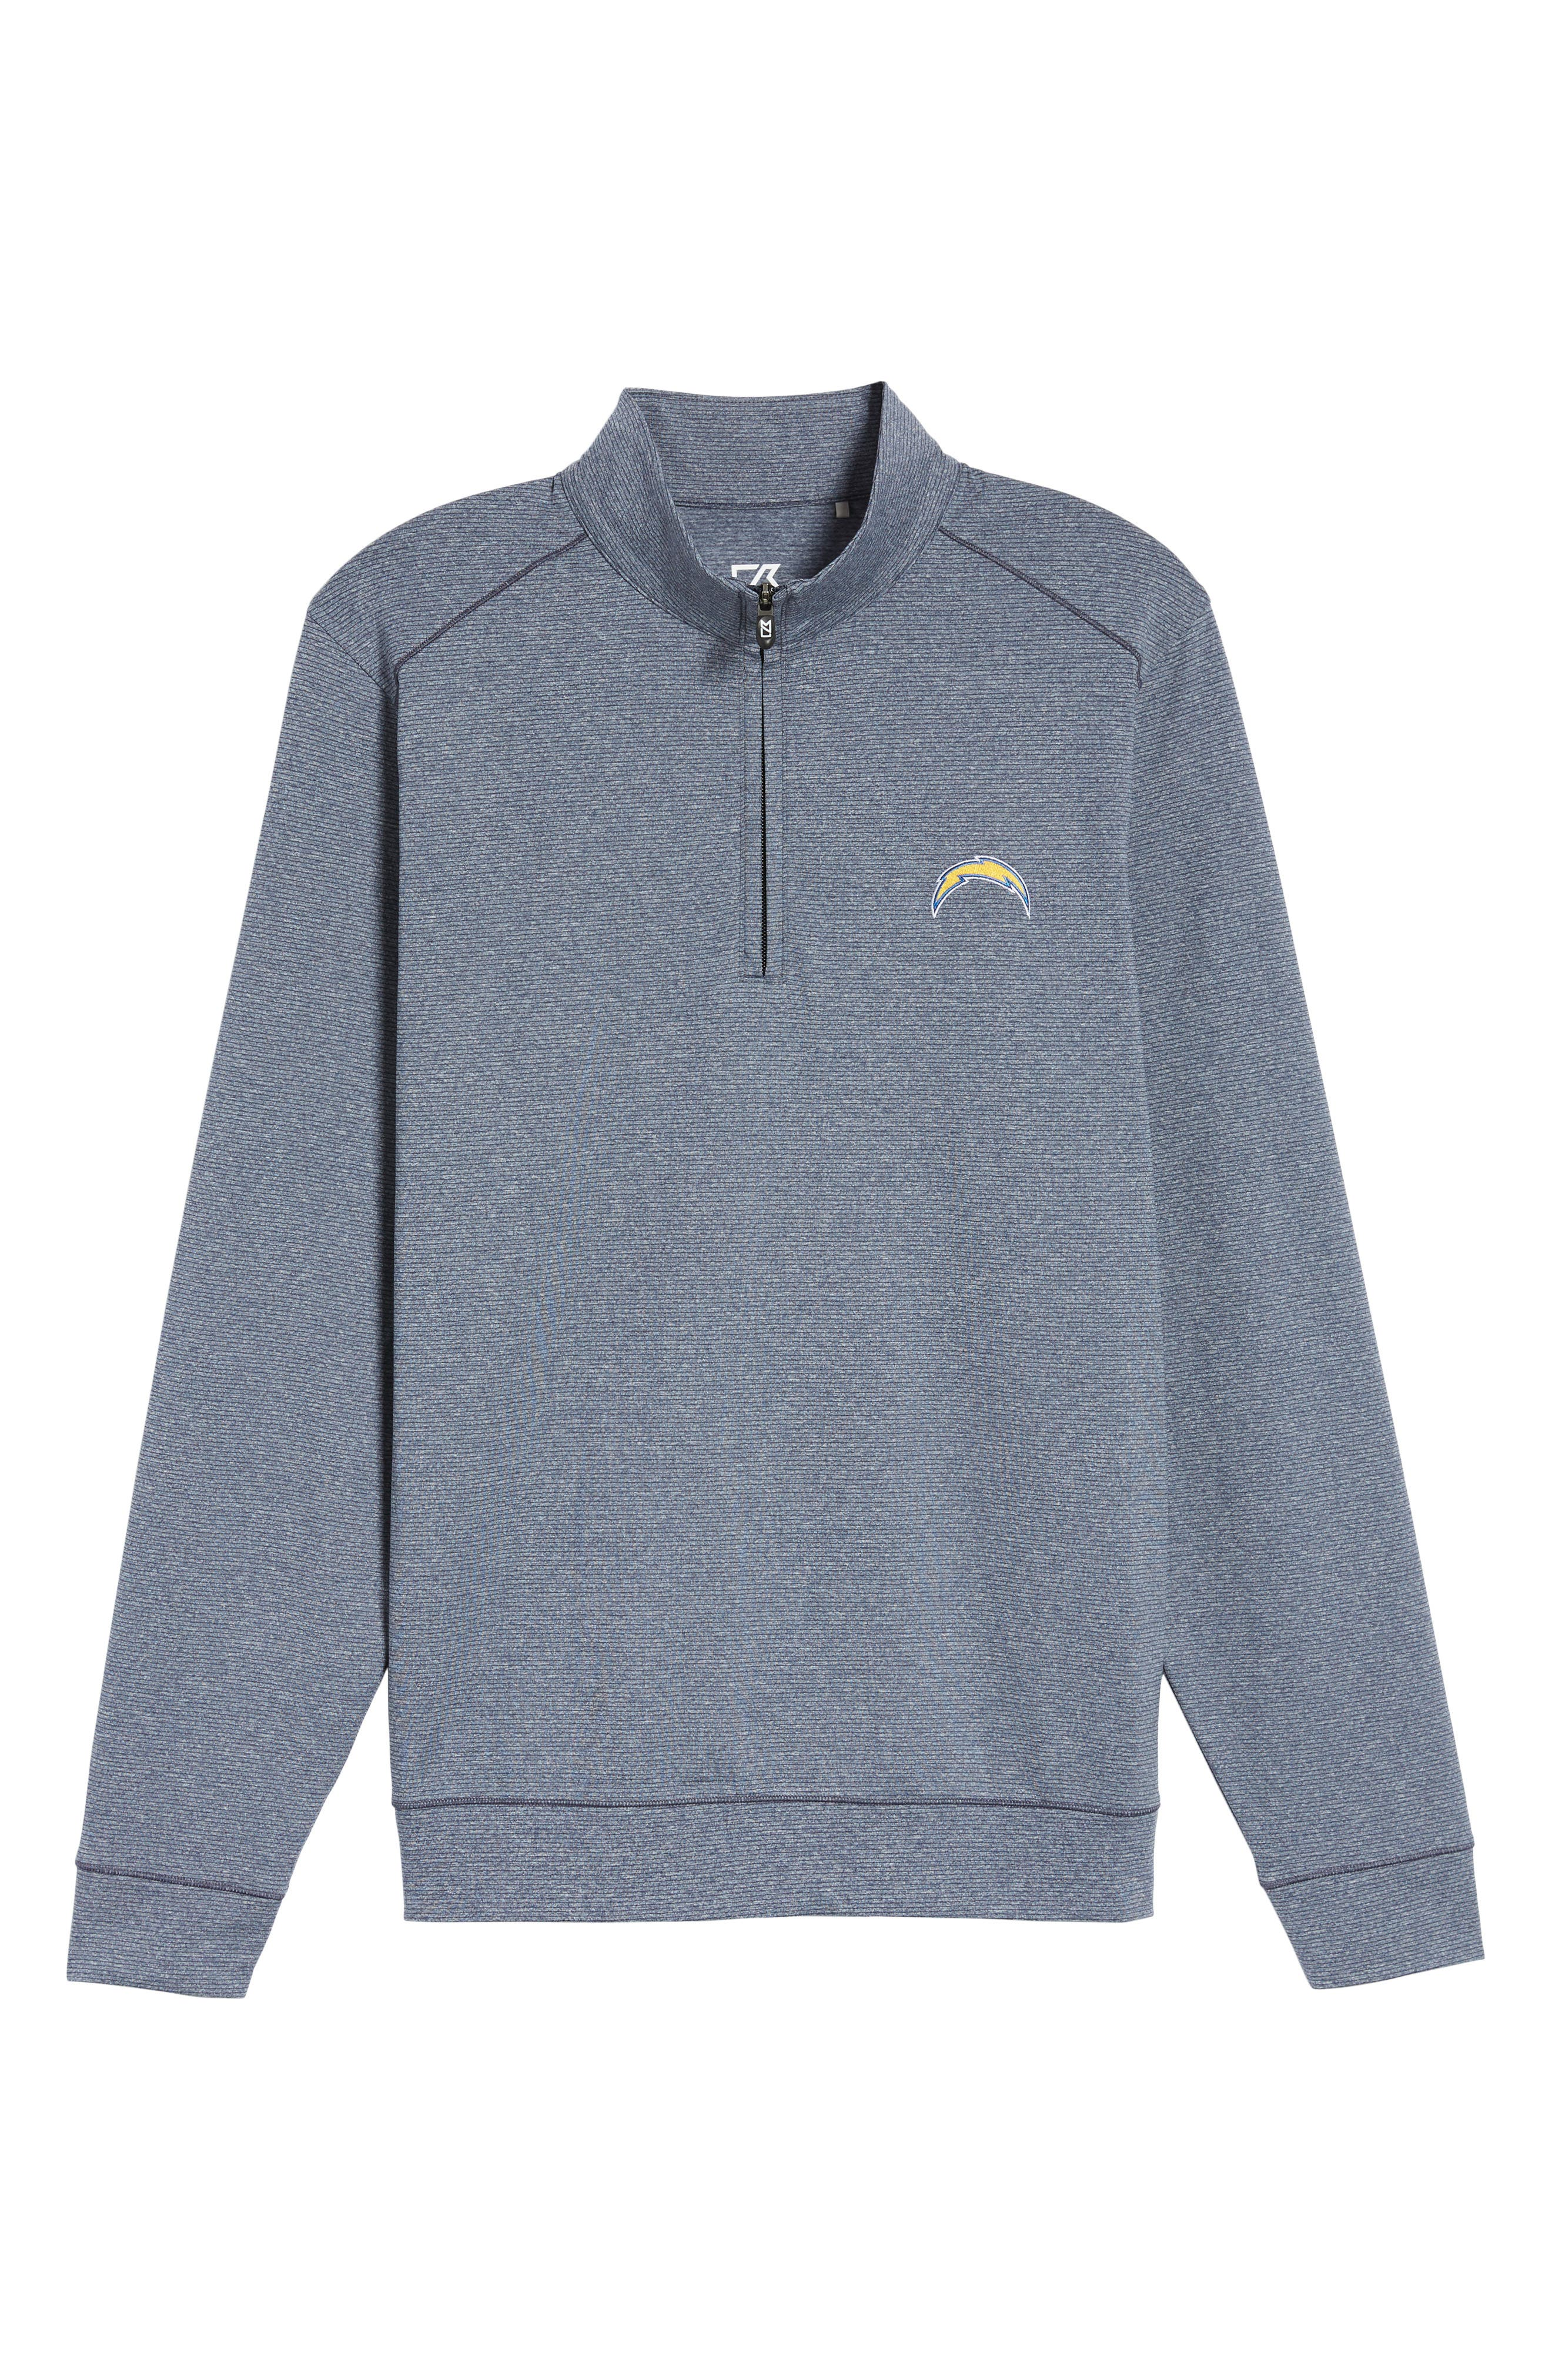 Shoreline - Los Angeles Chargers Half Zip Pullover,                             Alternate thumbnail 6, color,                             976